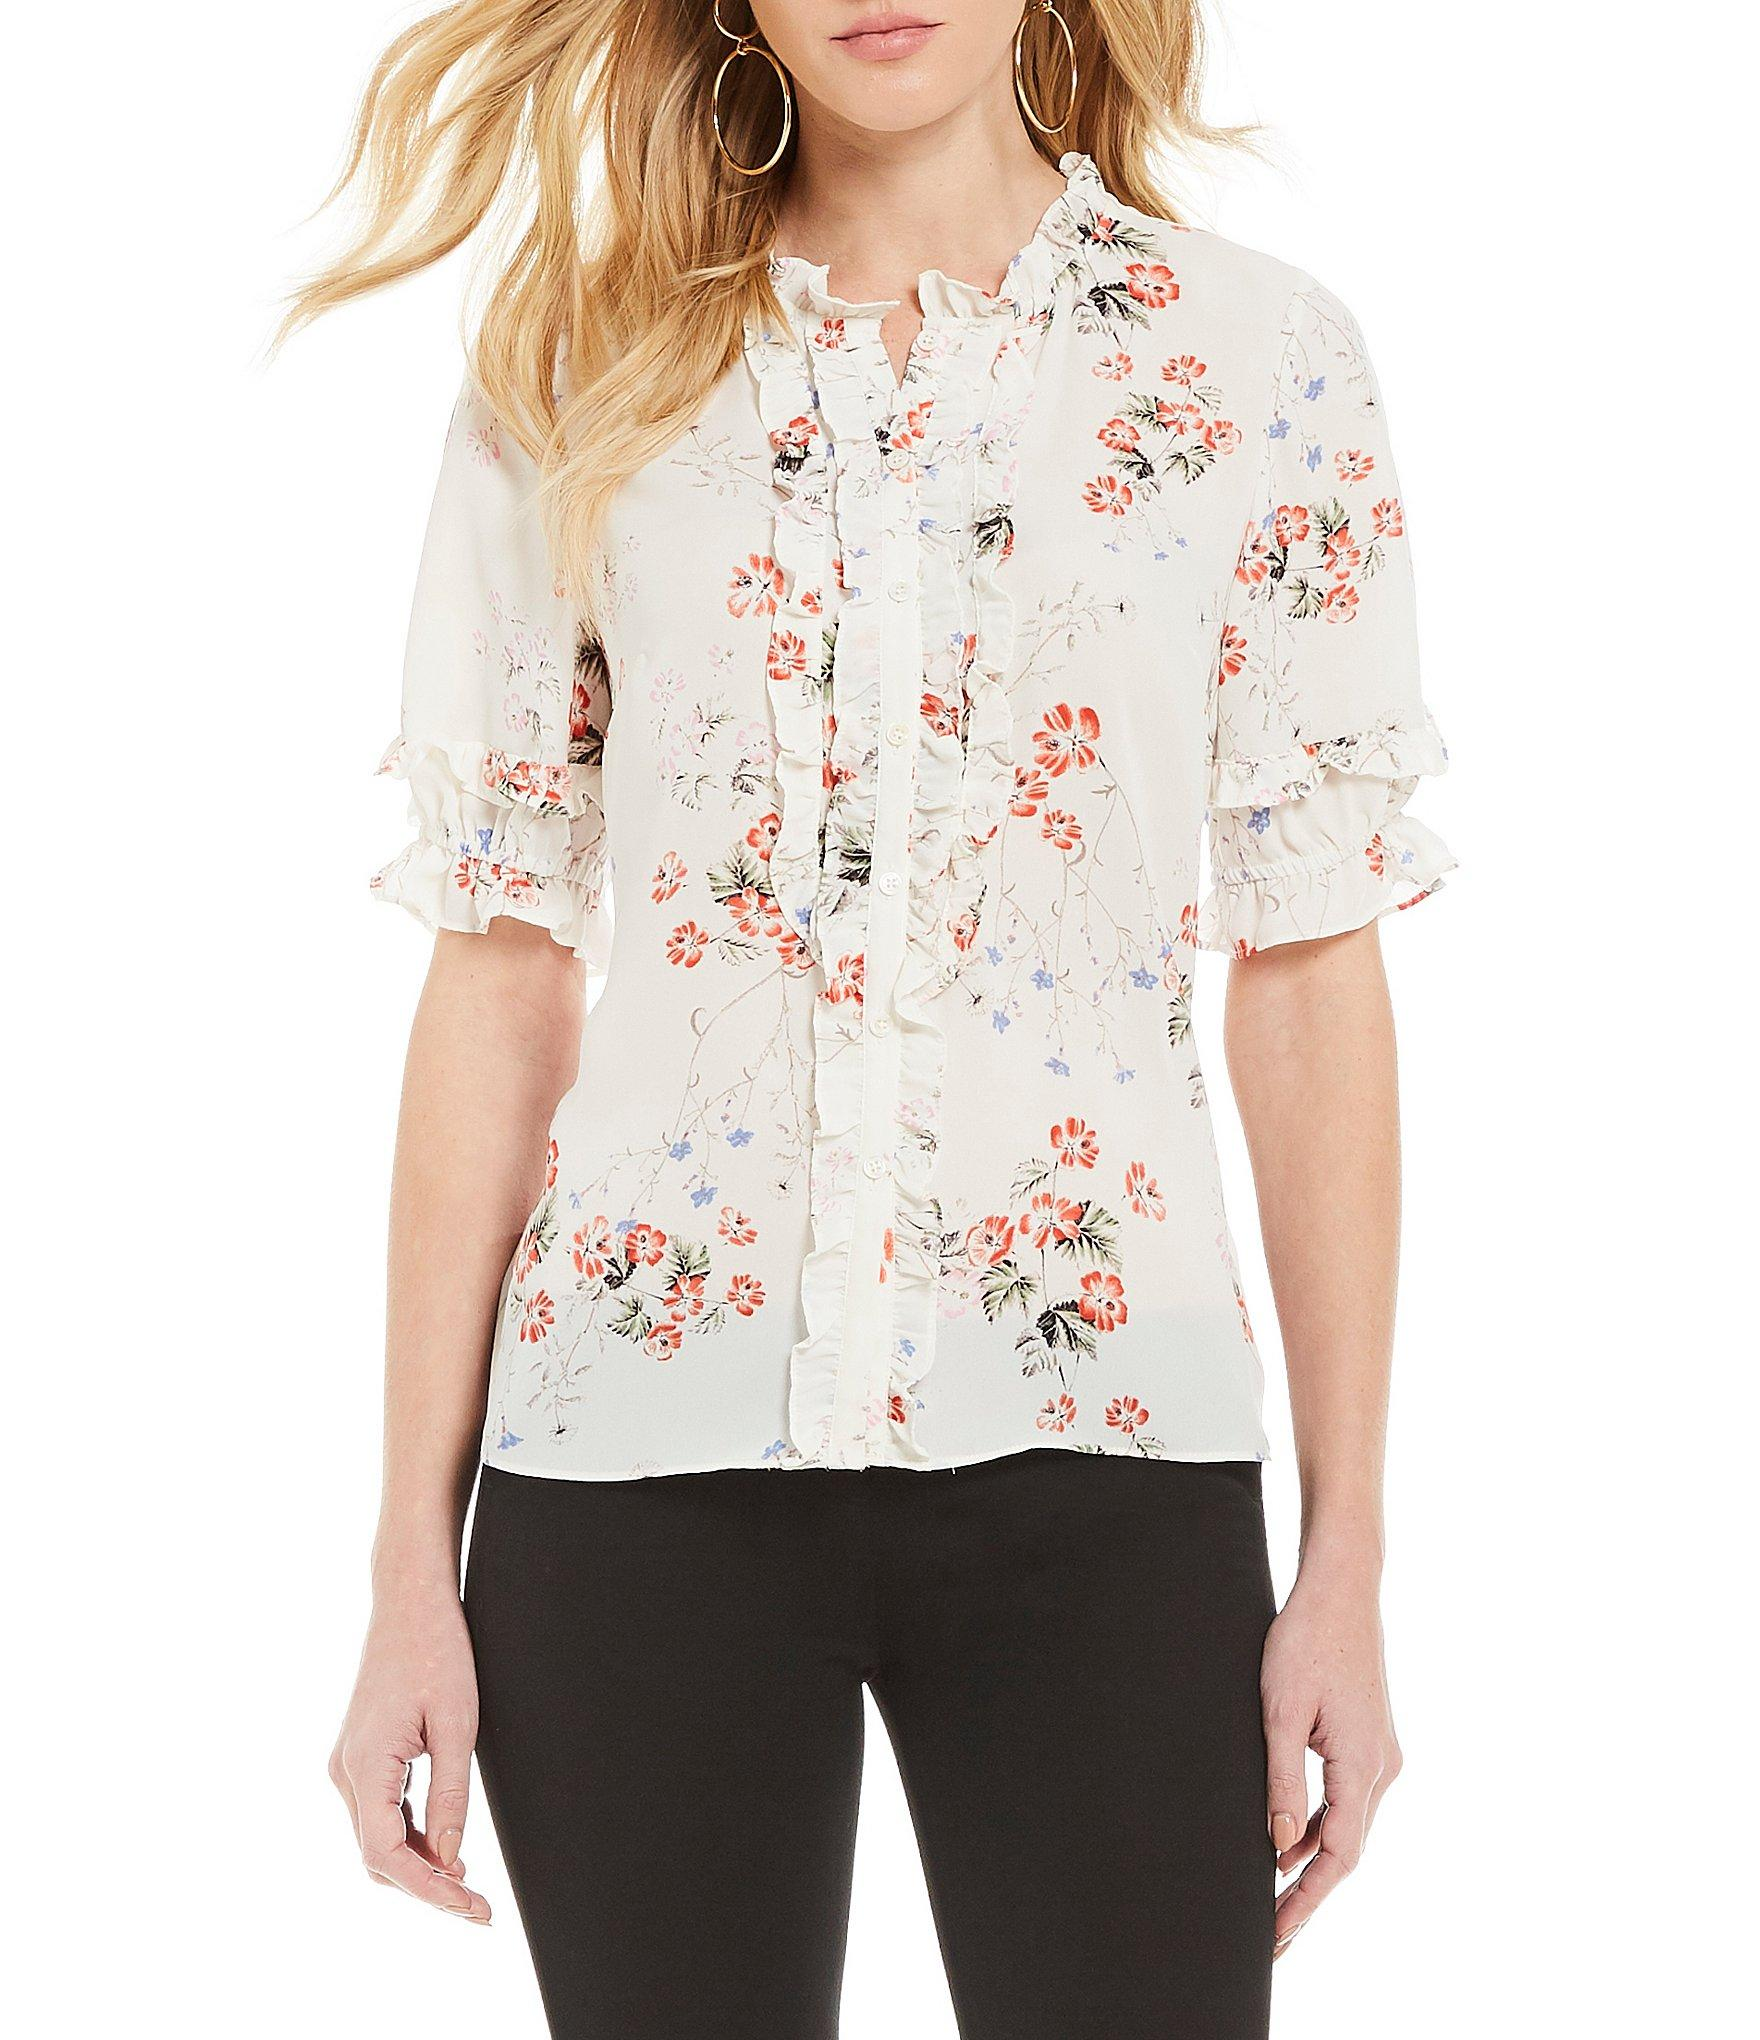 c3e796ea03c Cece. Women s Short Sleeve Ruffled Floral Print Button Down Blouse